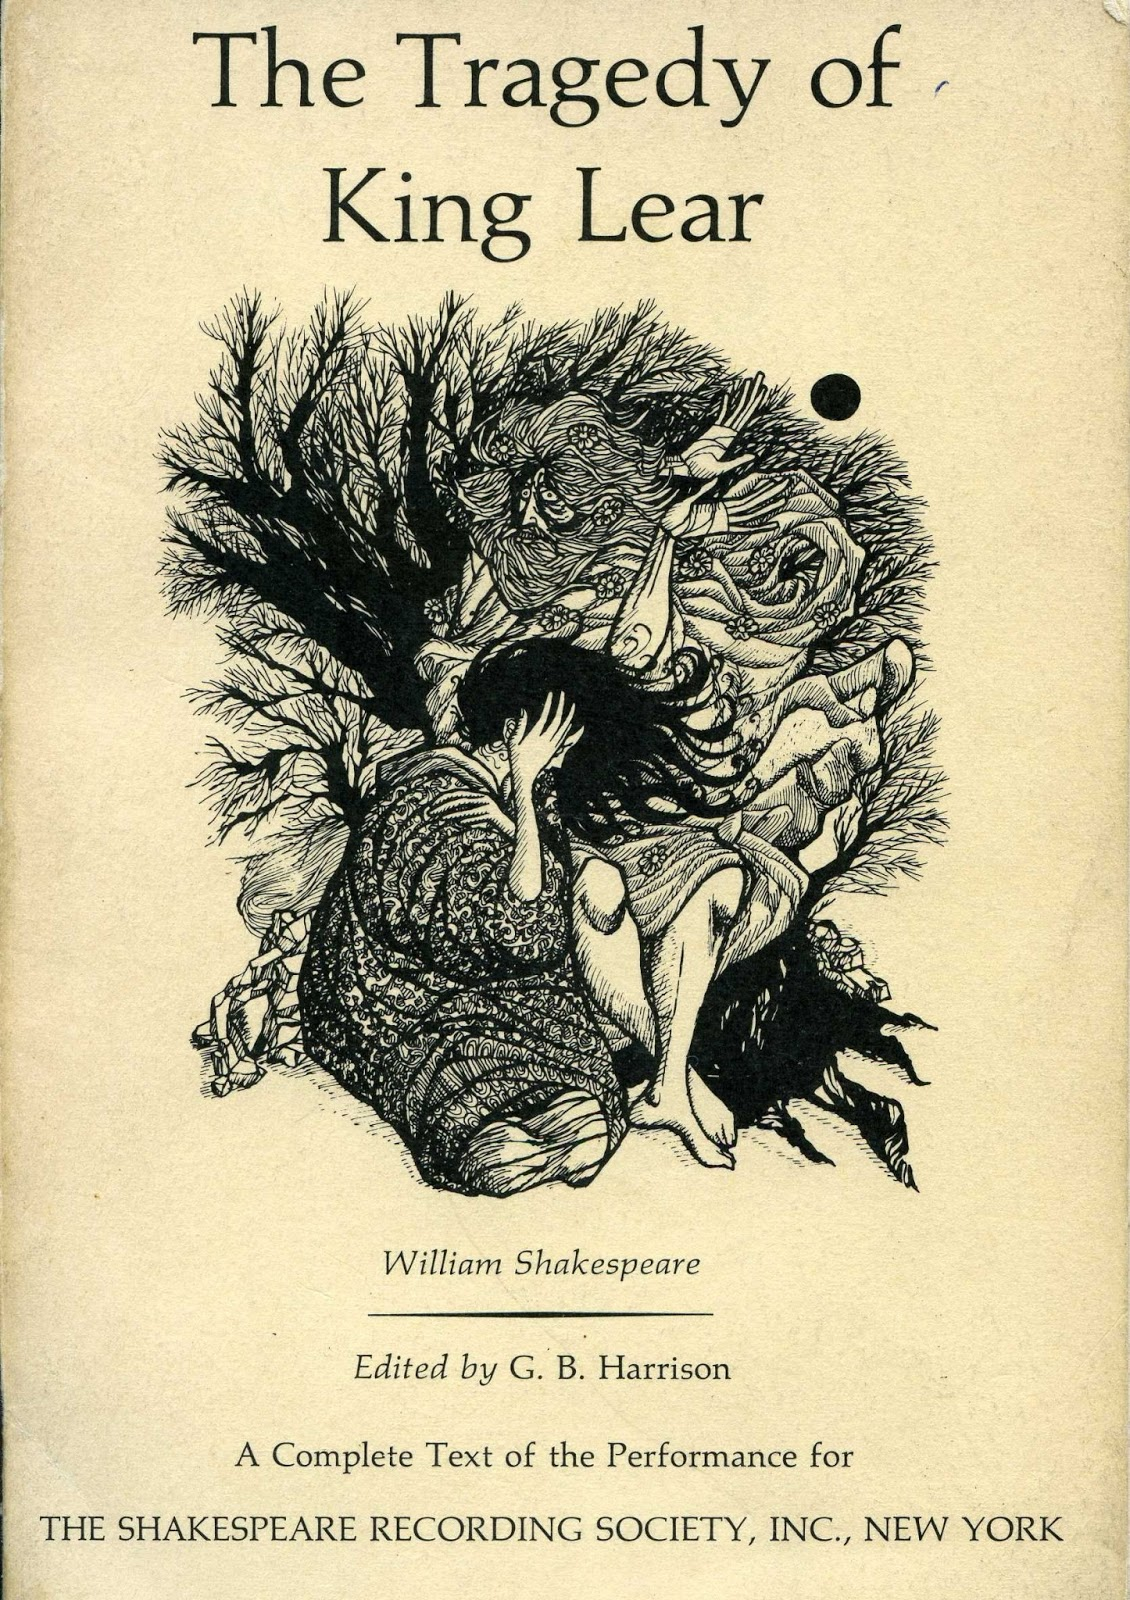 character analysis in king lear a play by william shakespeare At the end of the plays where he does that, however, the women always revert to  their female role and the conclusion is marriage and  the vain and foolish lear  decides to retire as king and give all his lands and money to his three daughters .